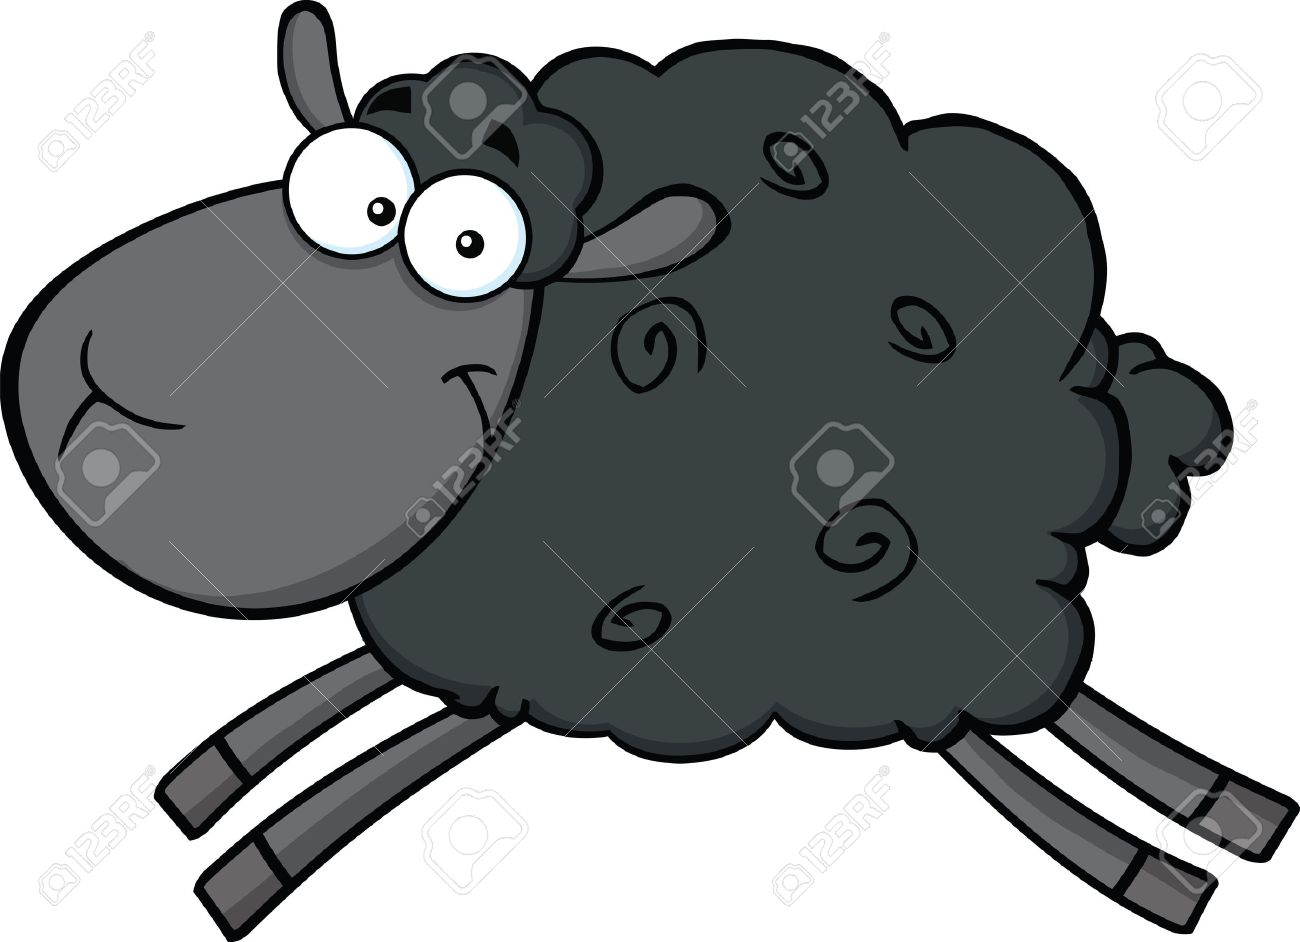 Black Sheep Stock Photos. Royalty Free Black Sheep Images